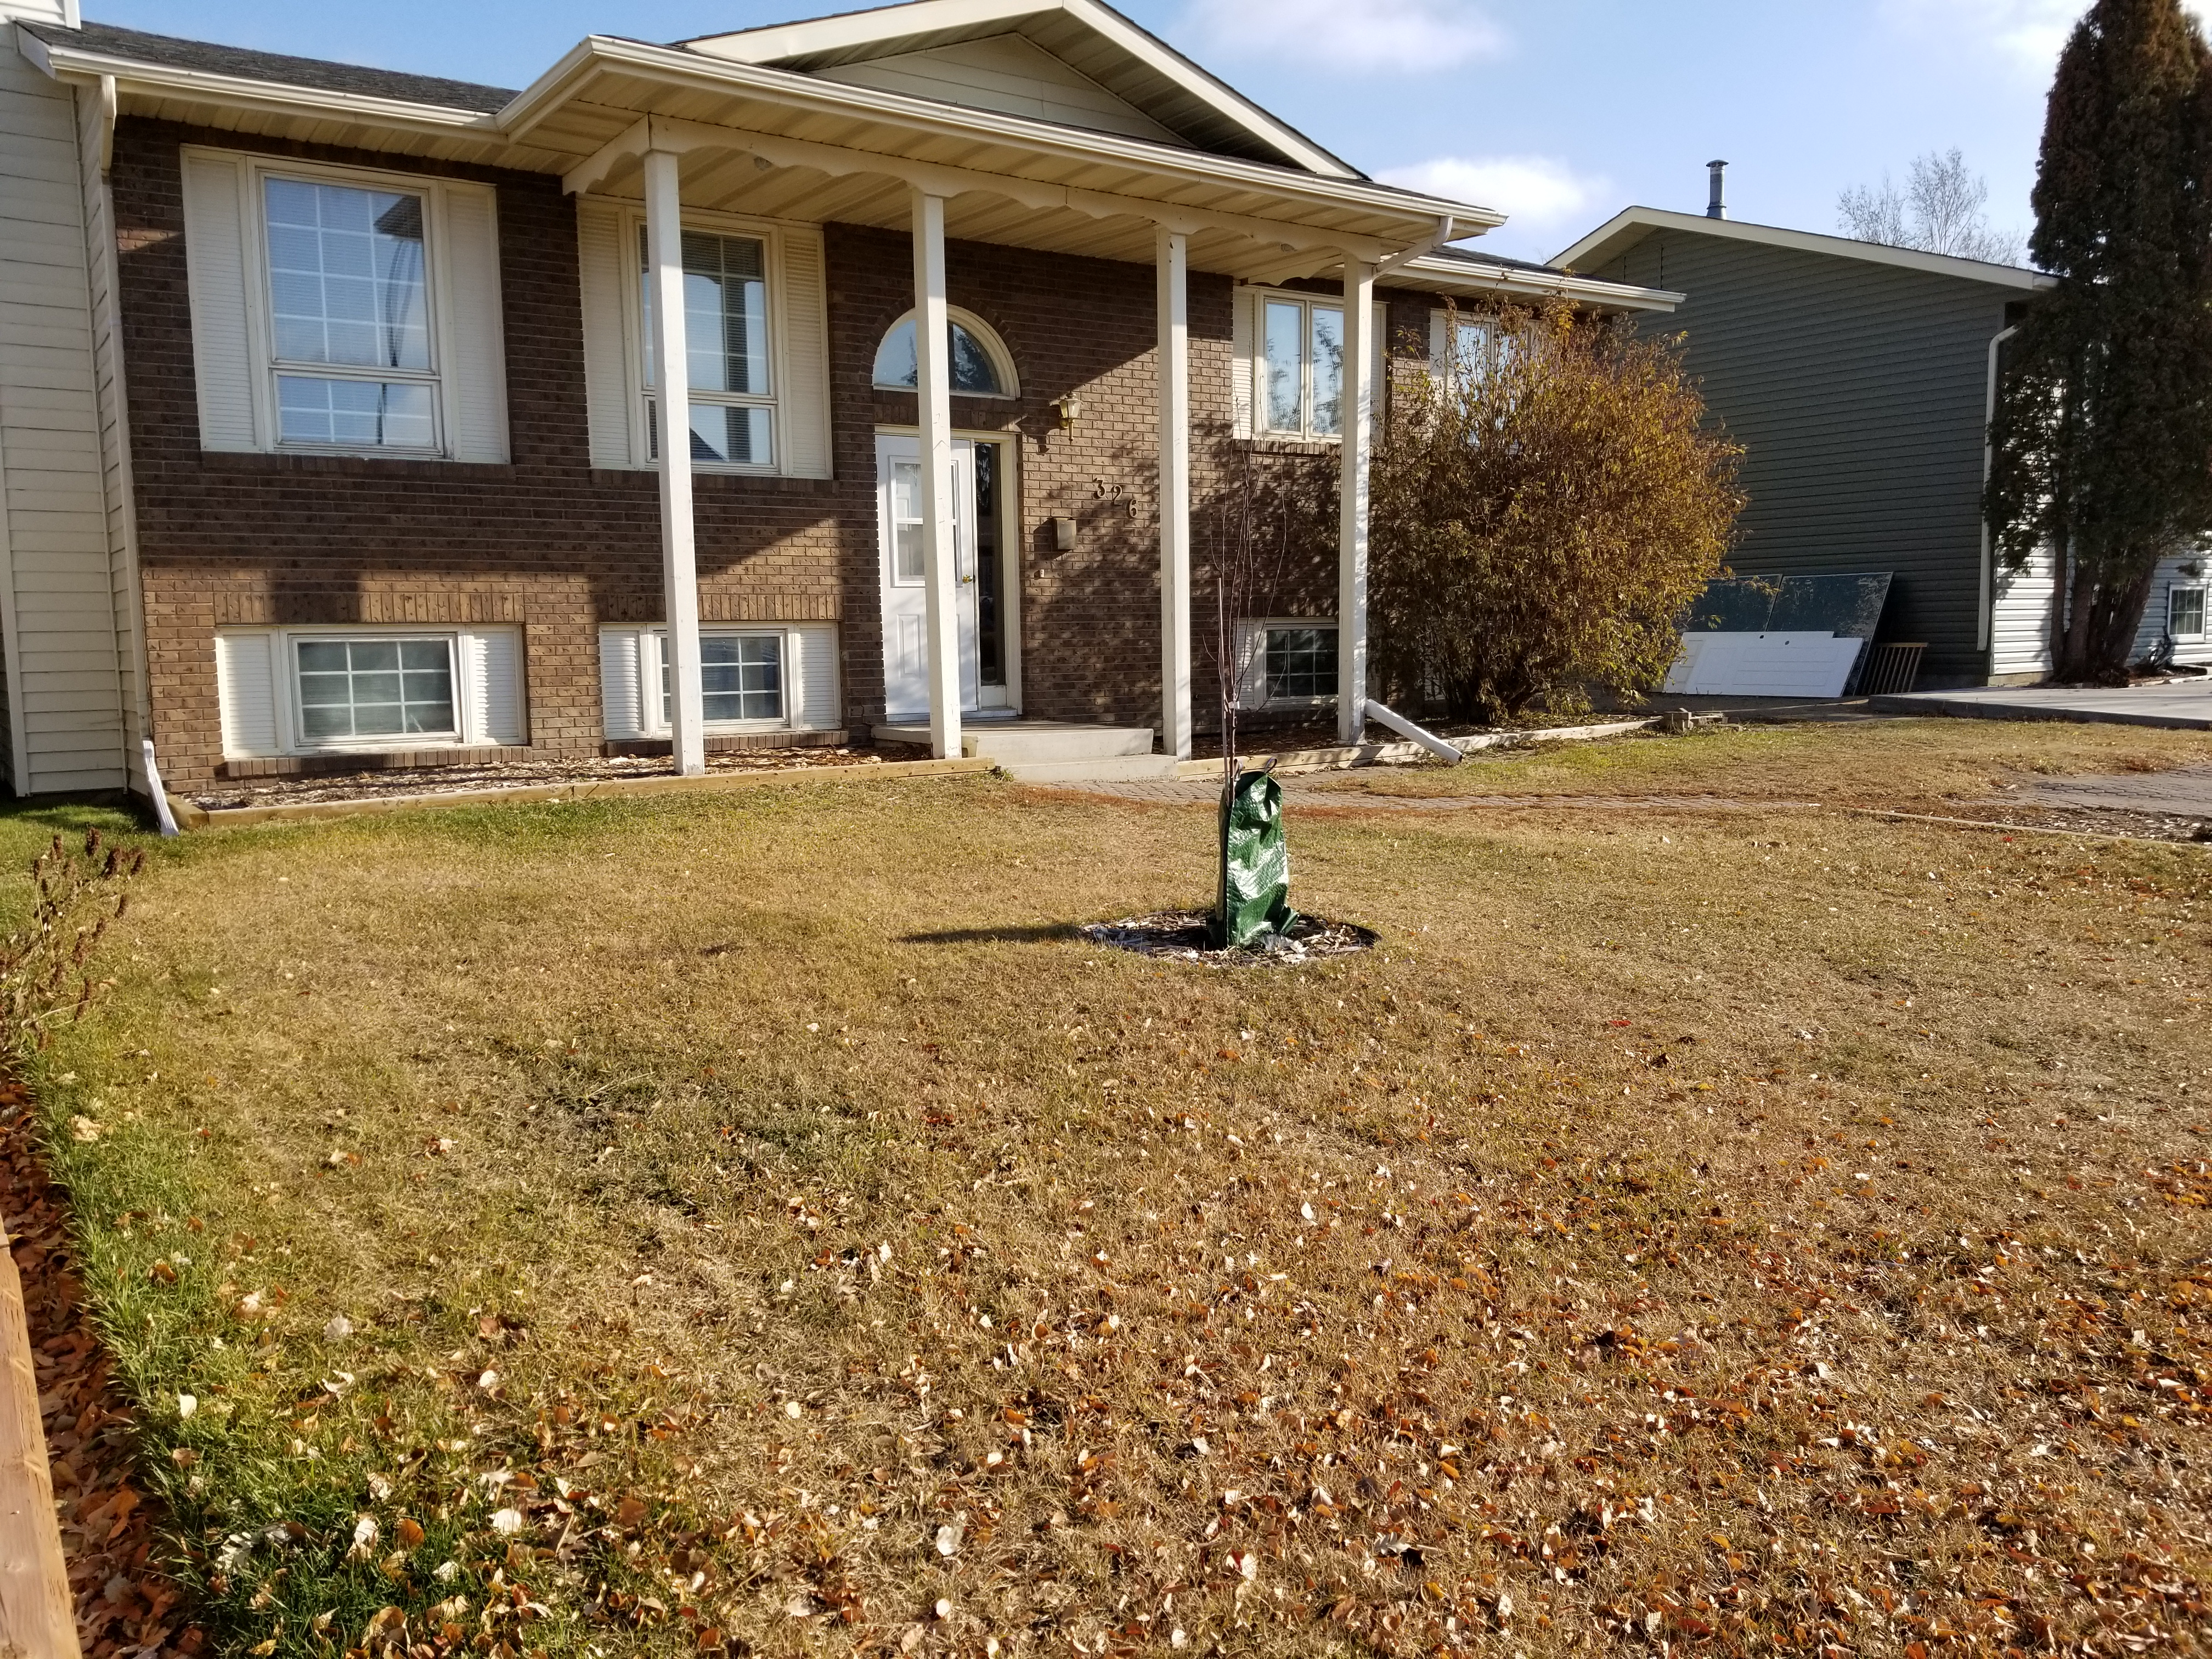 5 Beds & 2 Baths Spacious House In Sutherland Area